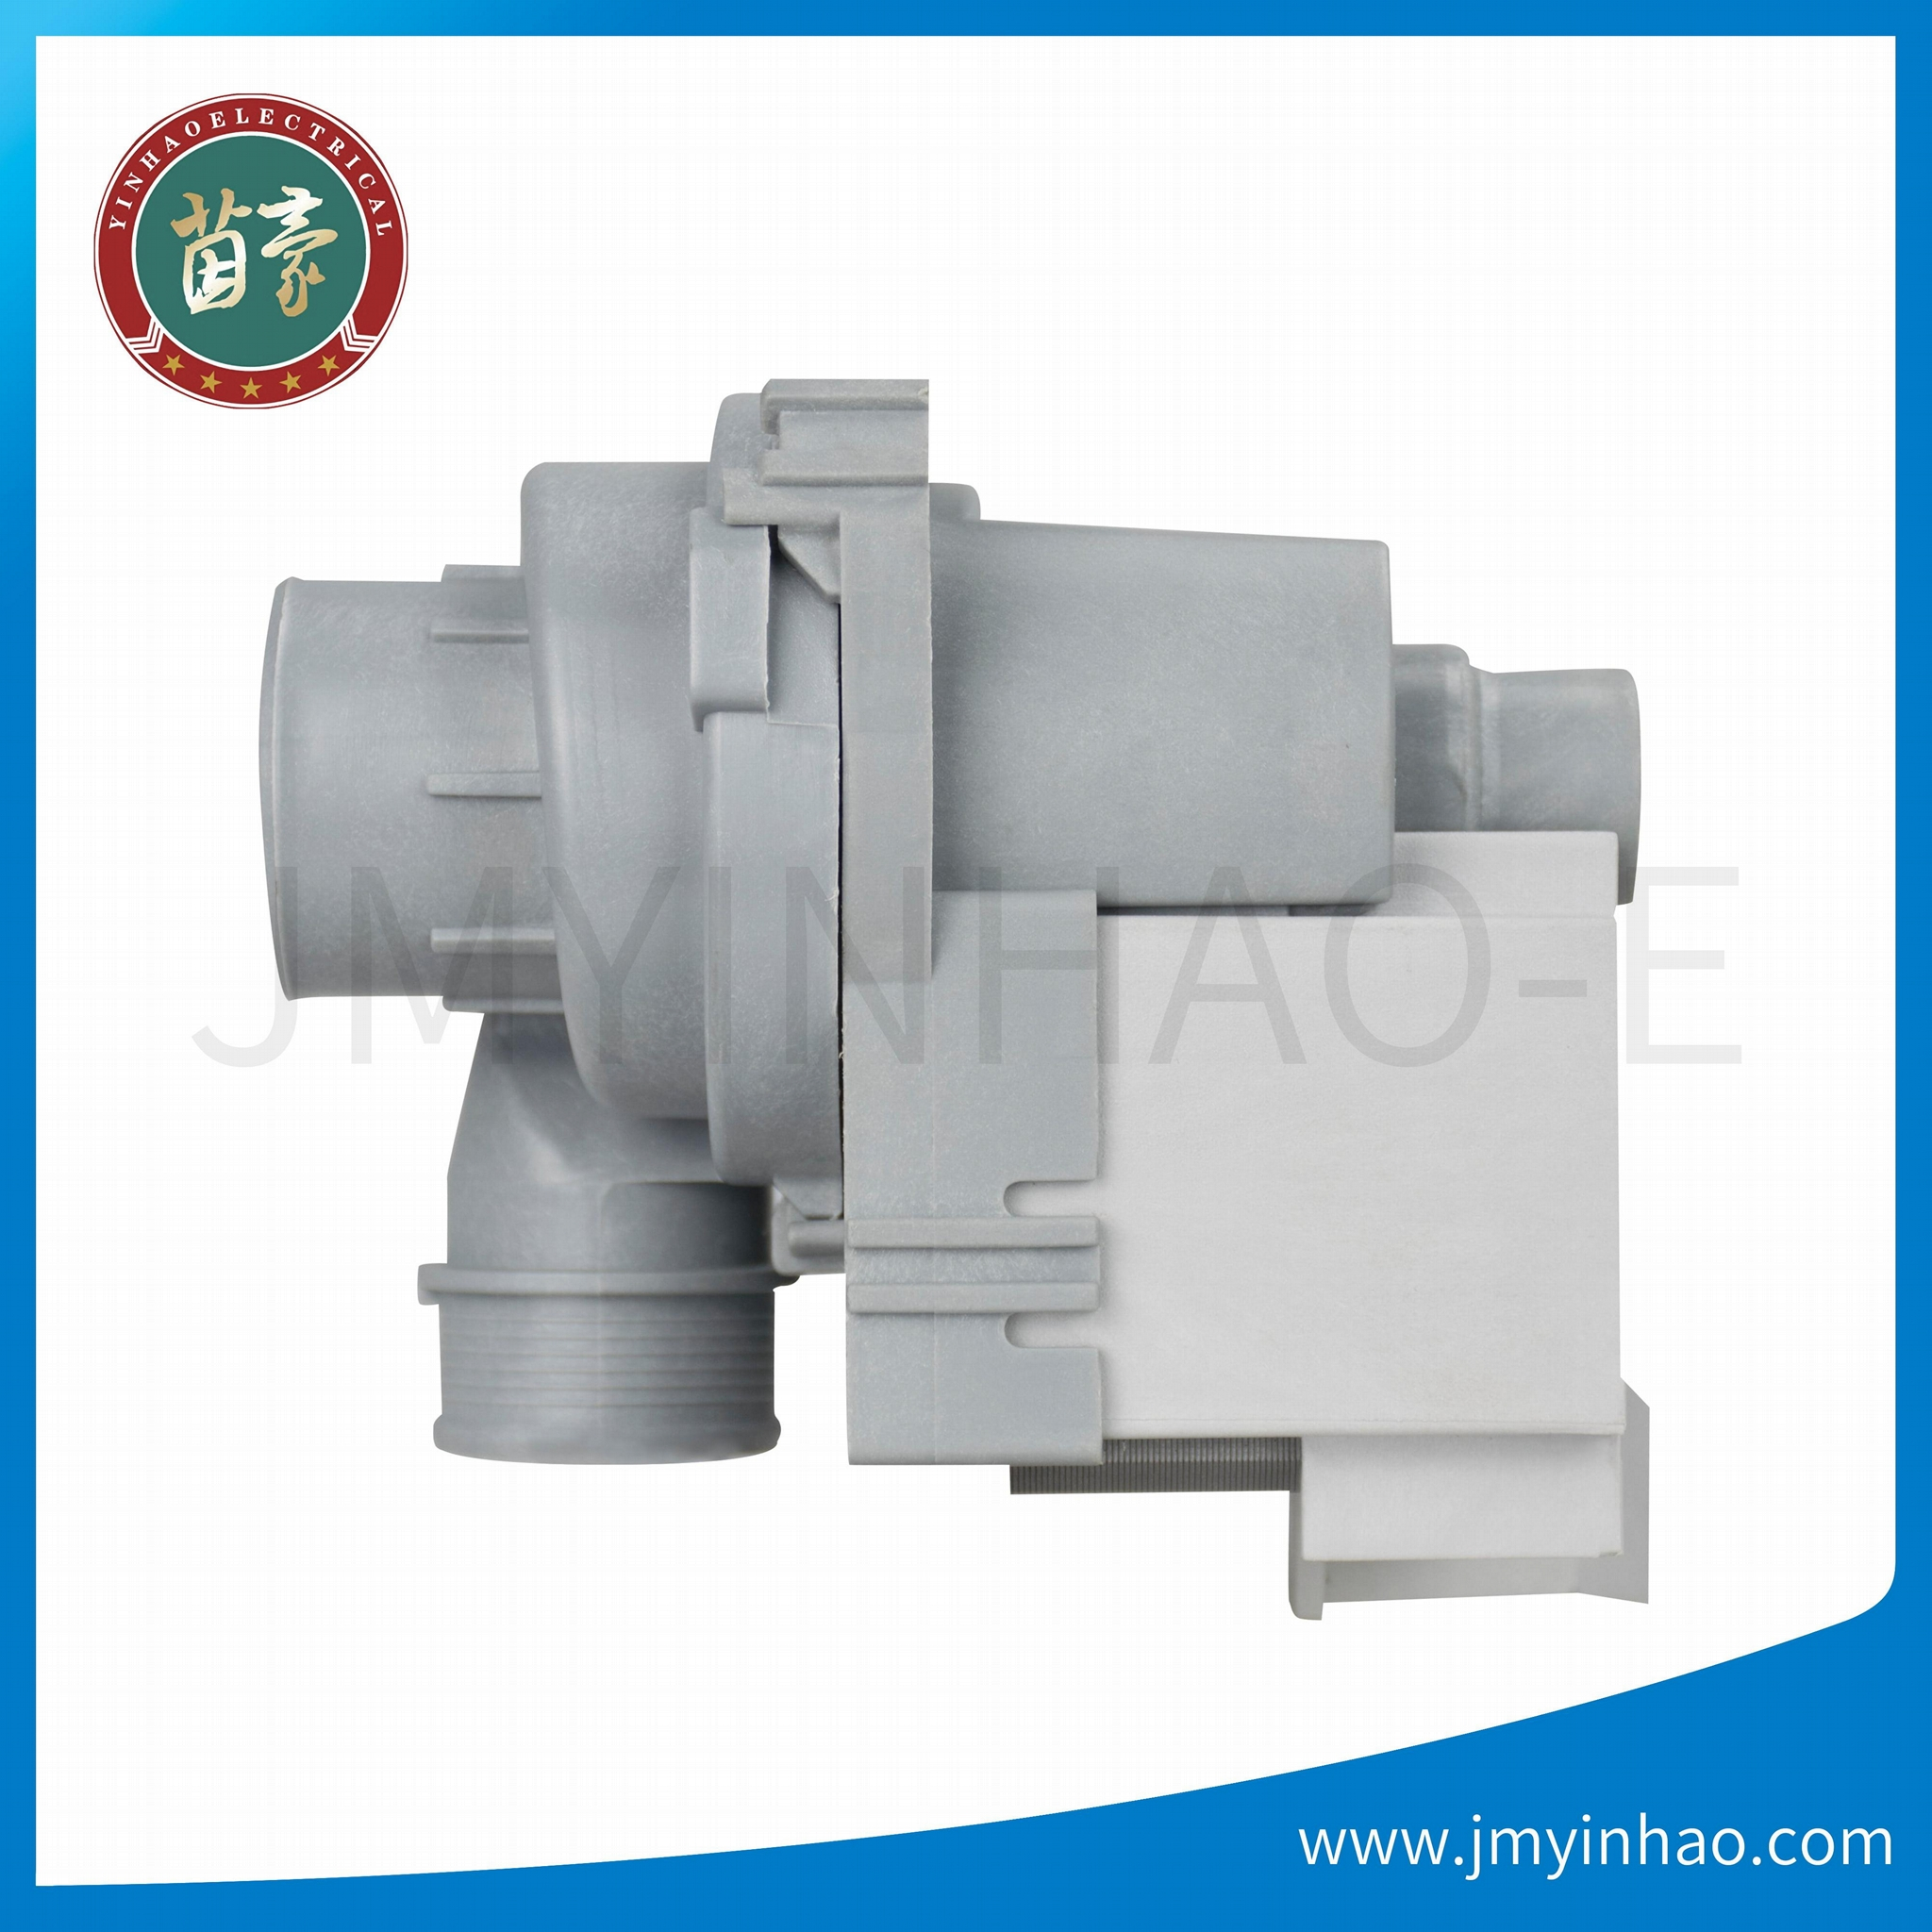 Yinhao drain pump for dishwasher